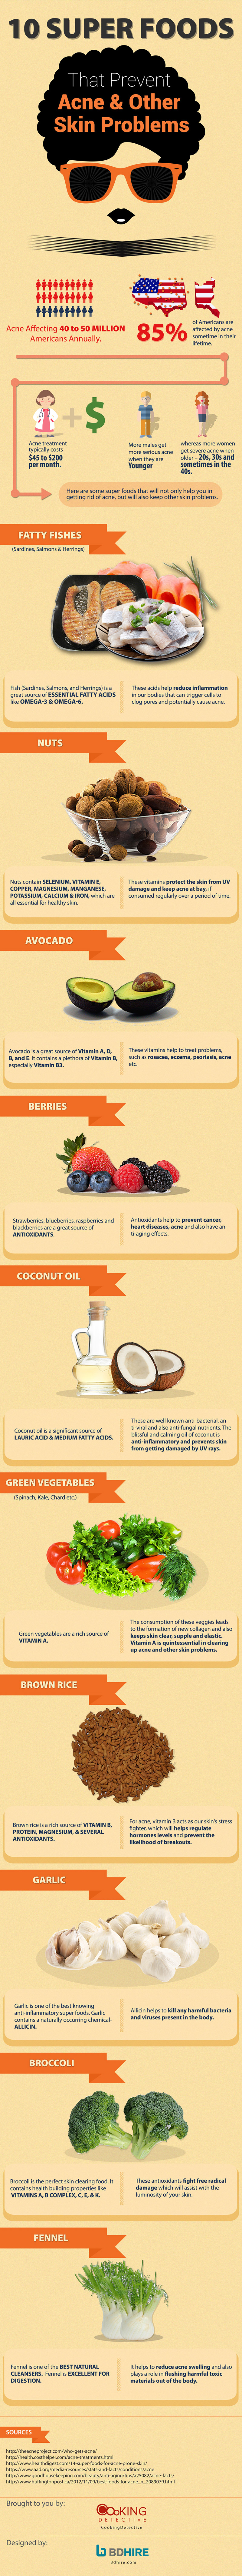 Solving Acne & Other Skin Problems With Food - Infographic